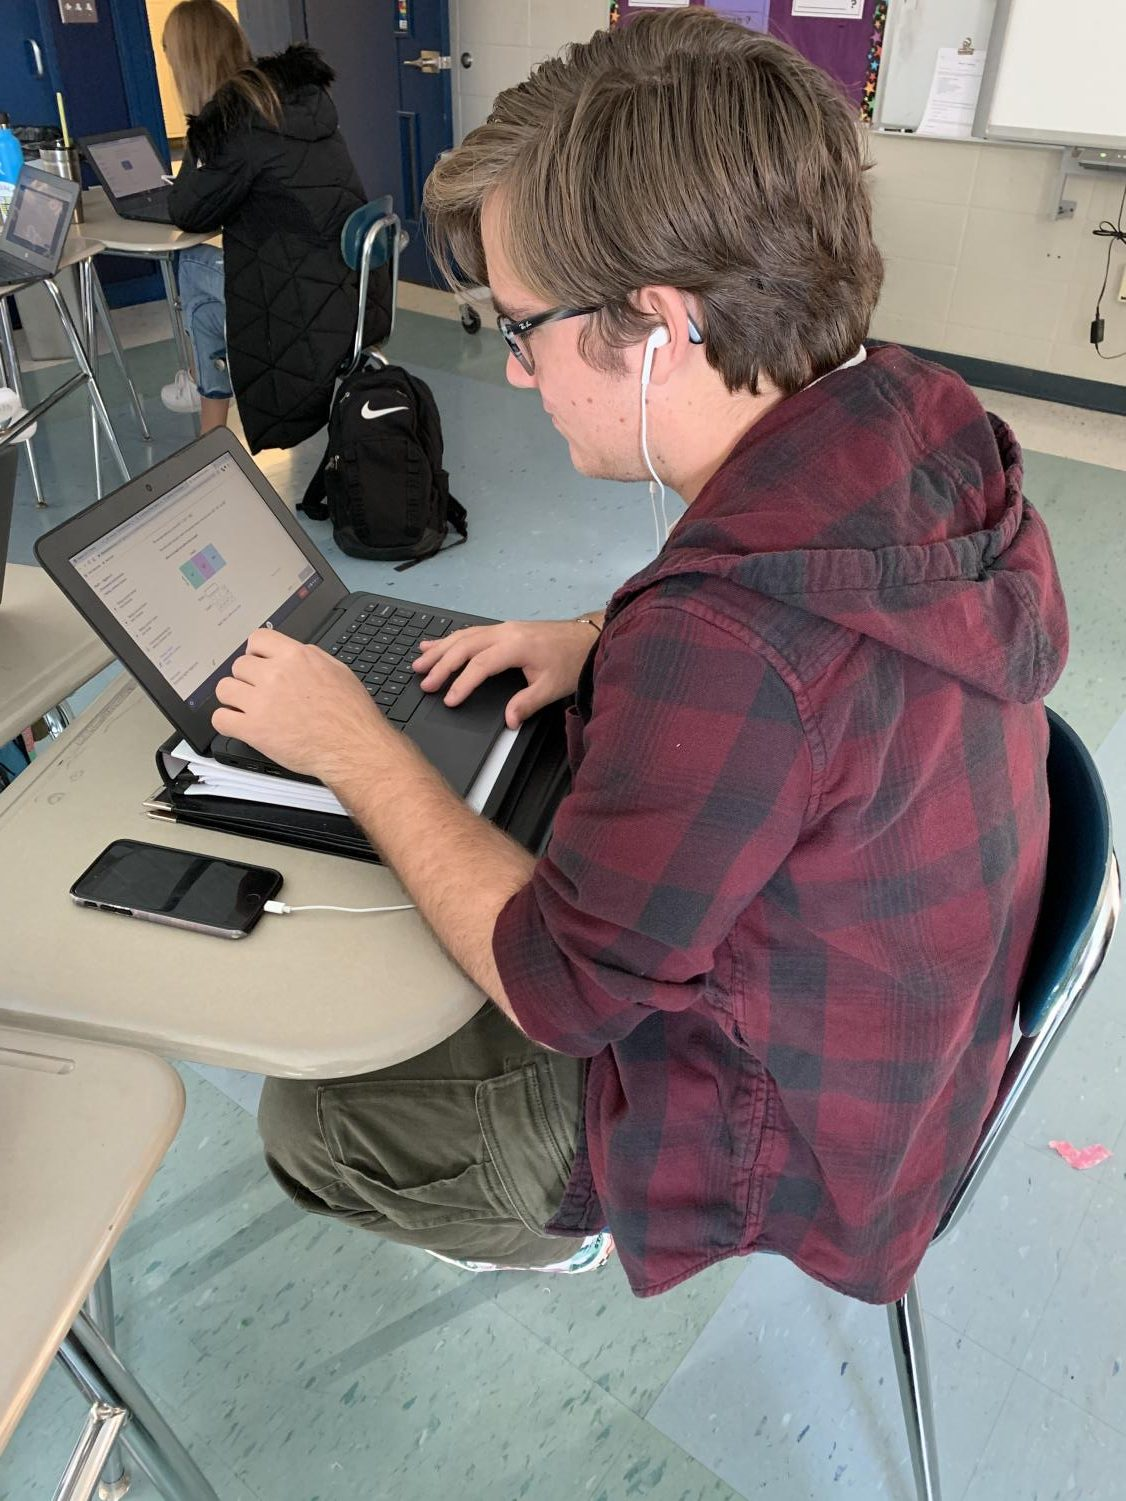 Junior Anthony Mariniello listens to music while doing work in Algebra 2.